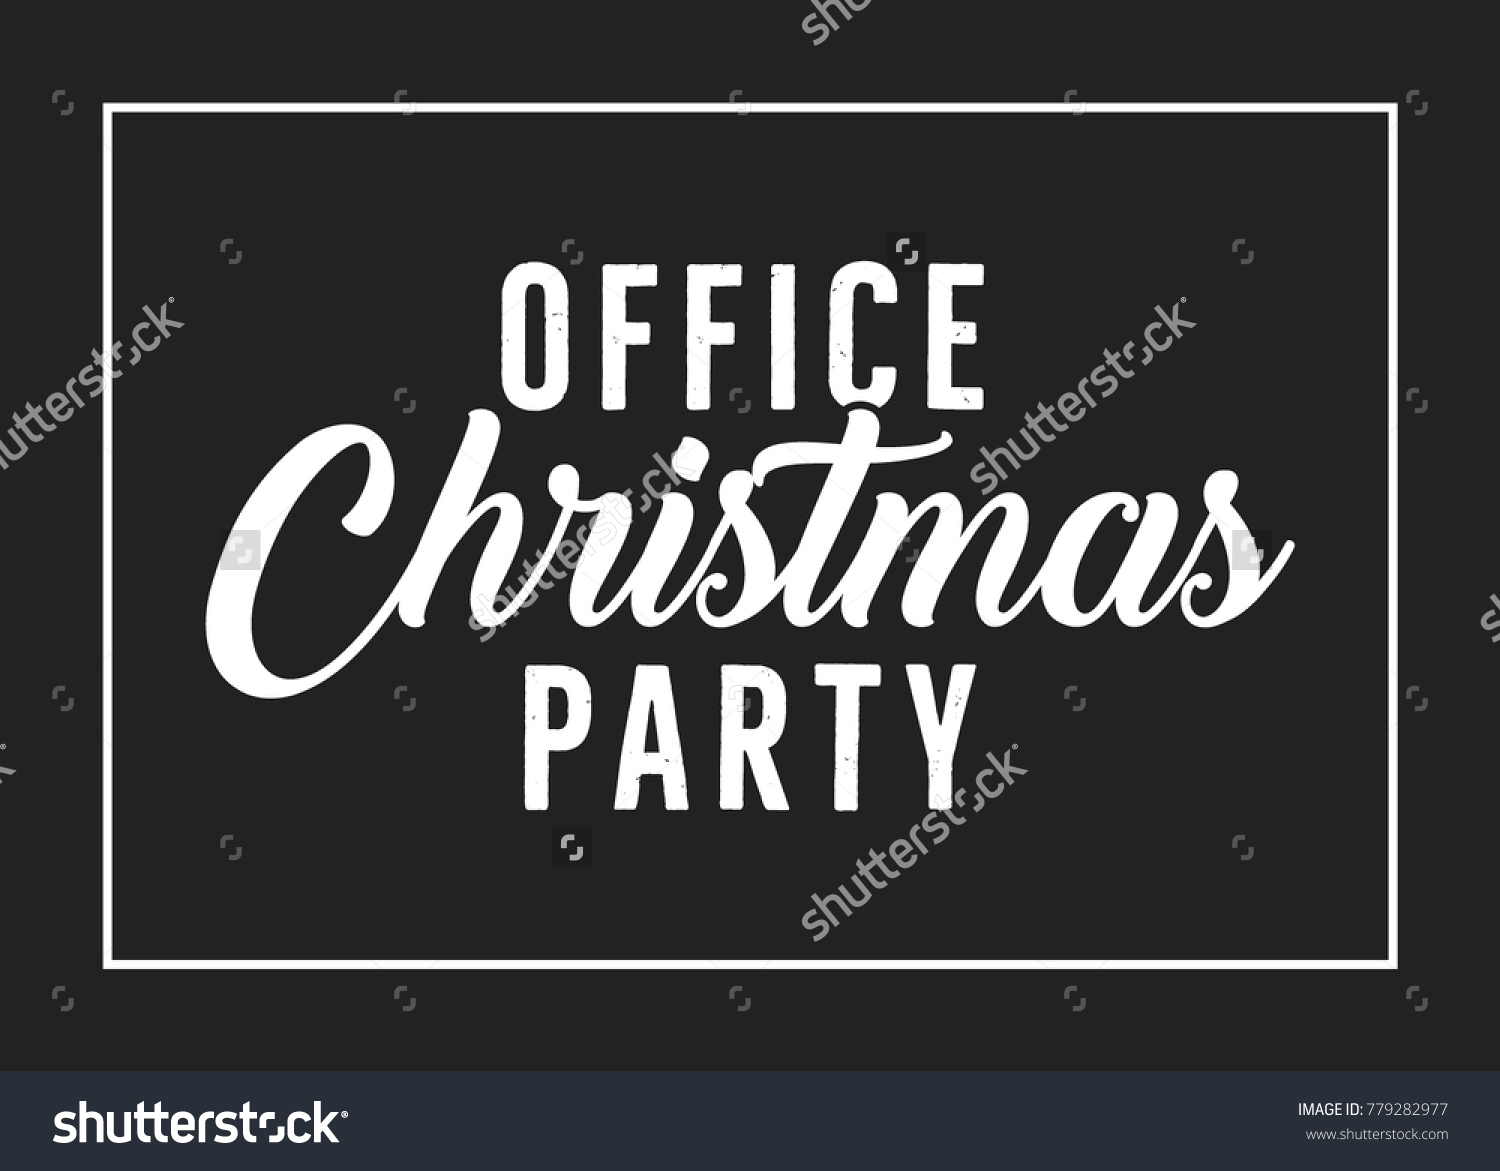 Office Christmas Holiday Party Vector Text Background | EZ Canvas